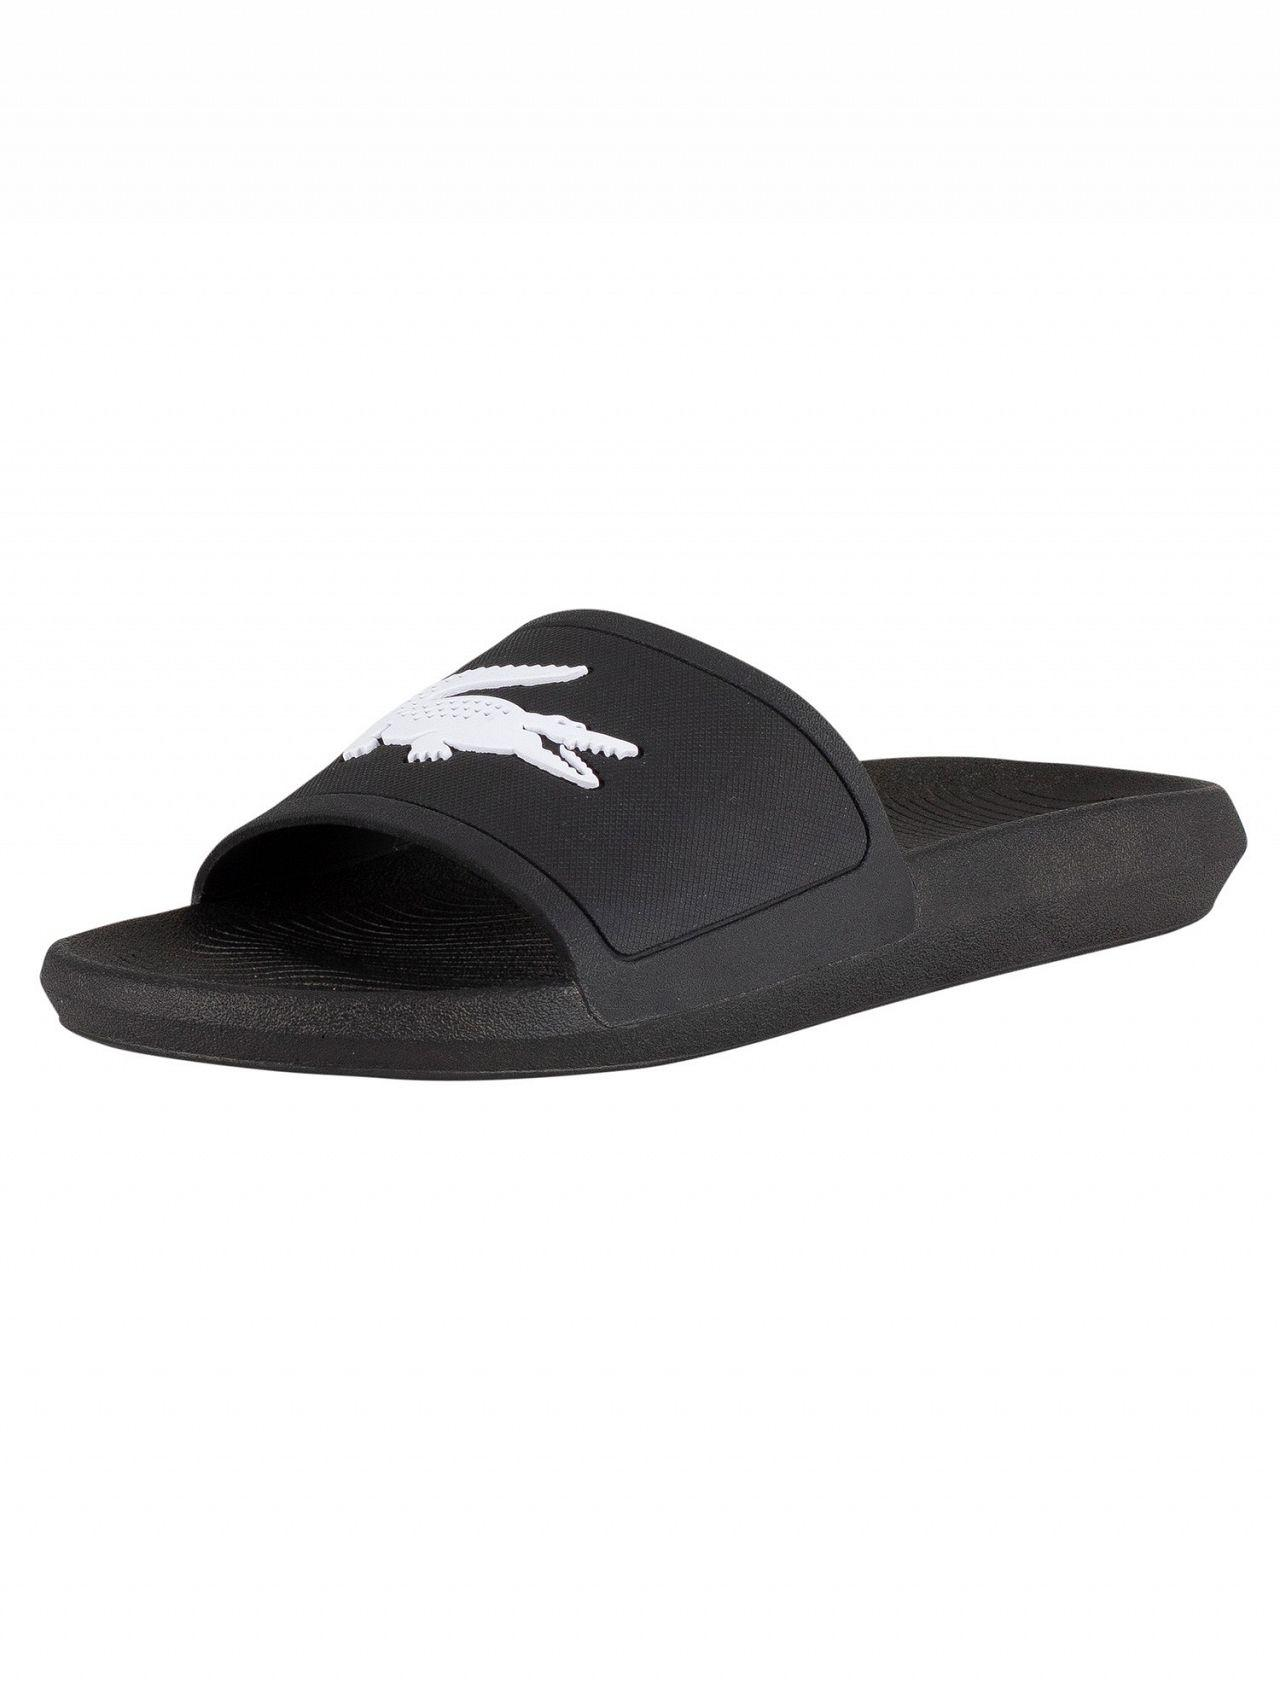 ccdb554c0b030b Lyst - Lacoste Black Flip-flops With Contrasting Logo in Black for ...